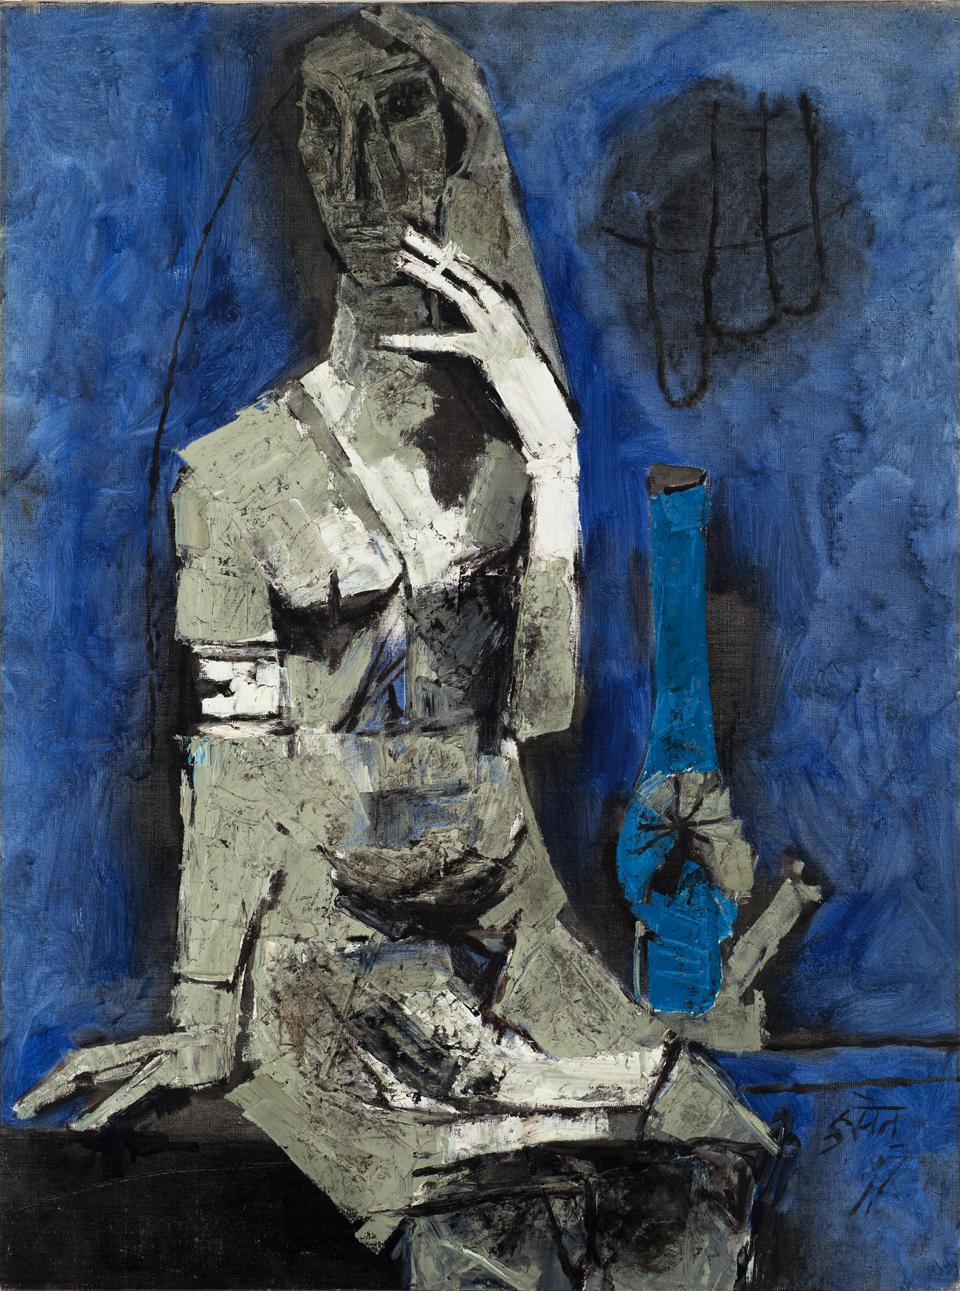 Maqbool Fida Husain (Indian), 'Virgin Night,' 1964. Oil on canvas, 39 3/4 x 29 1/2 in.